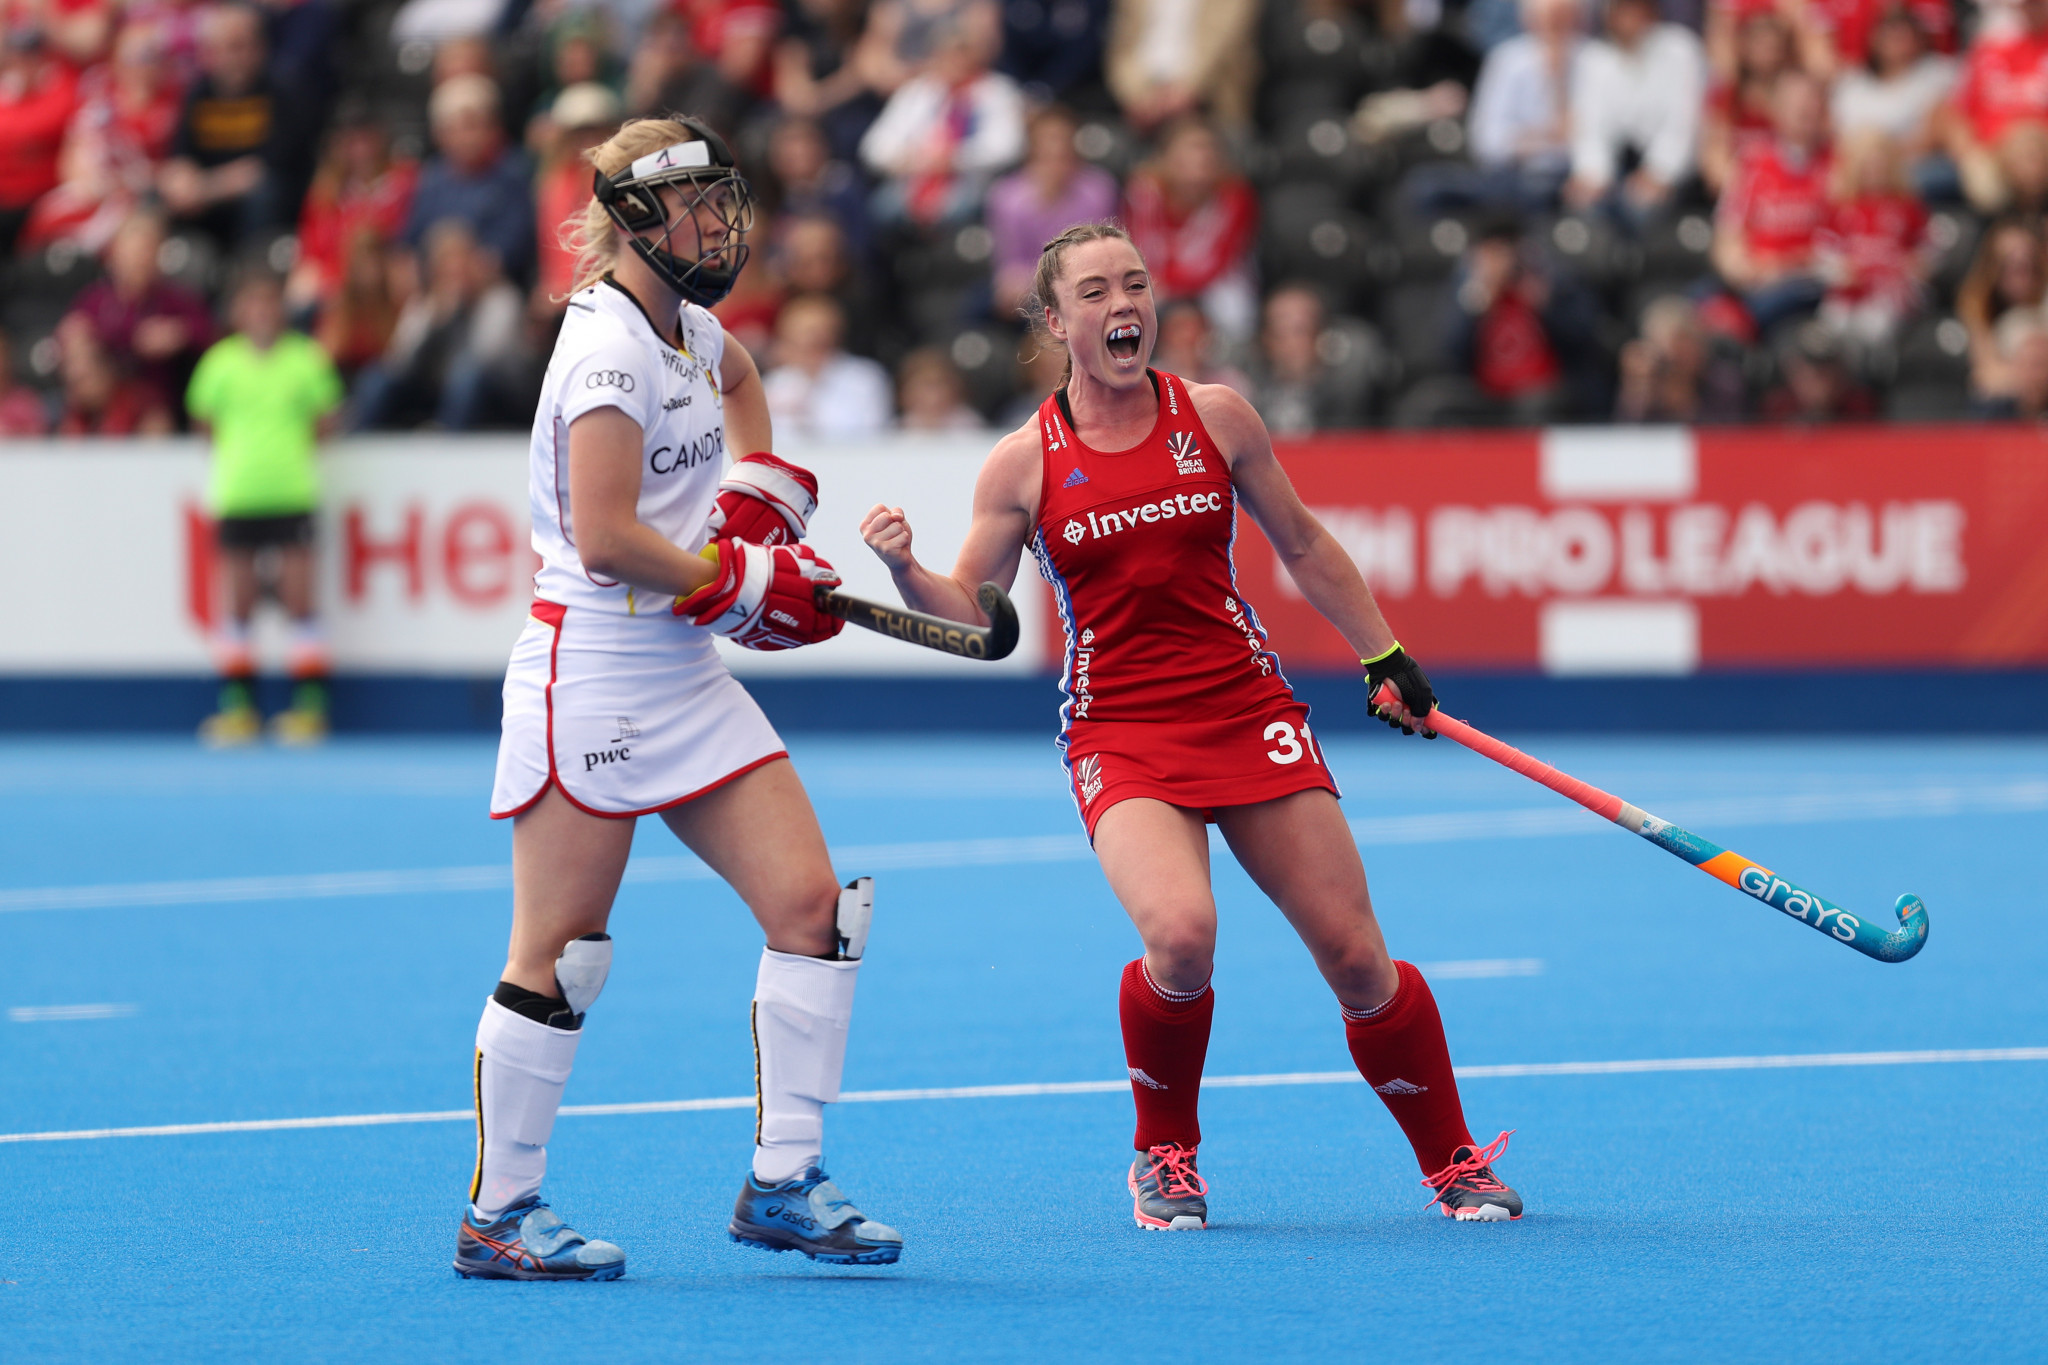 Great Britain women claim much-needed victory over Belgium in FIH Pro League